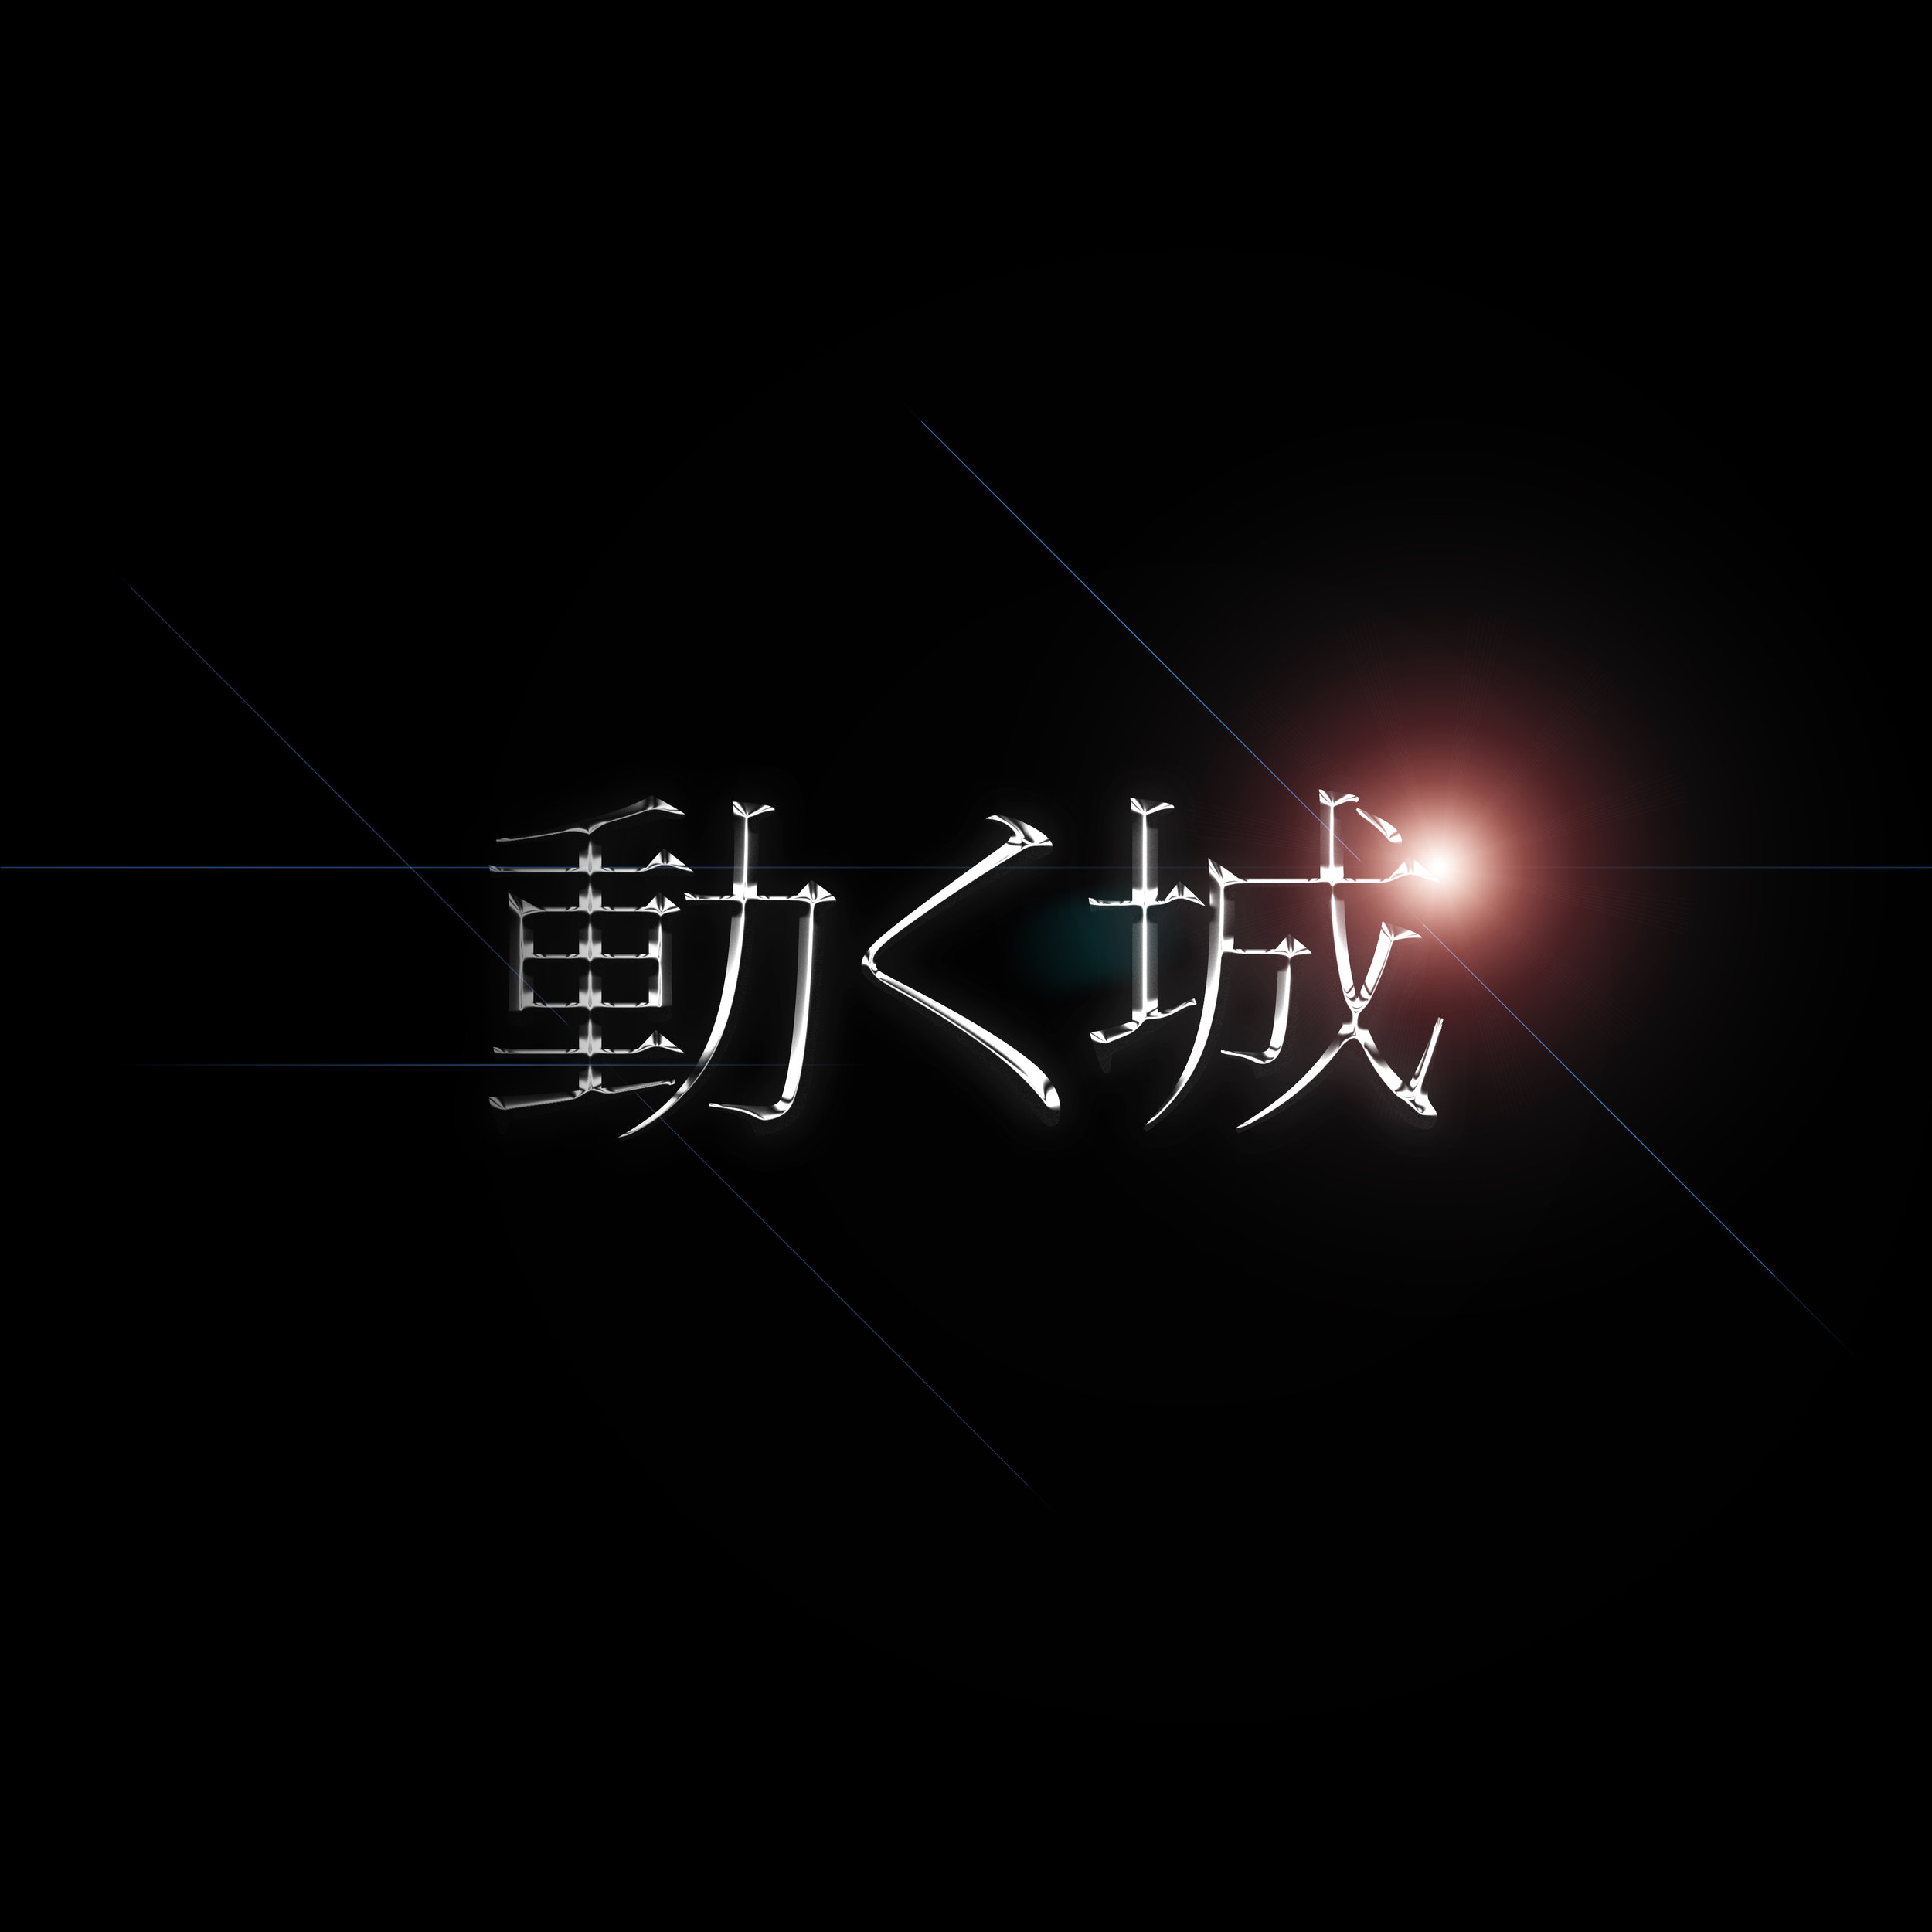 moving castle logo lens flare.jpg